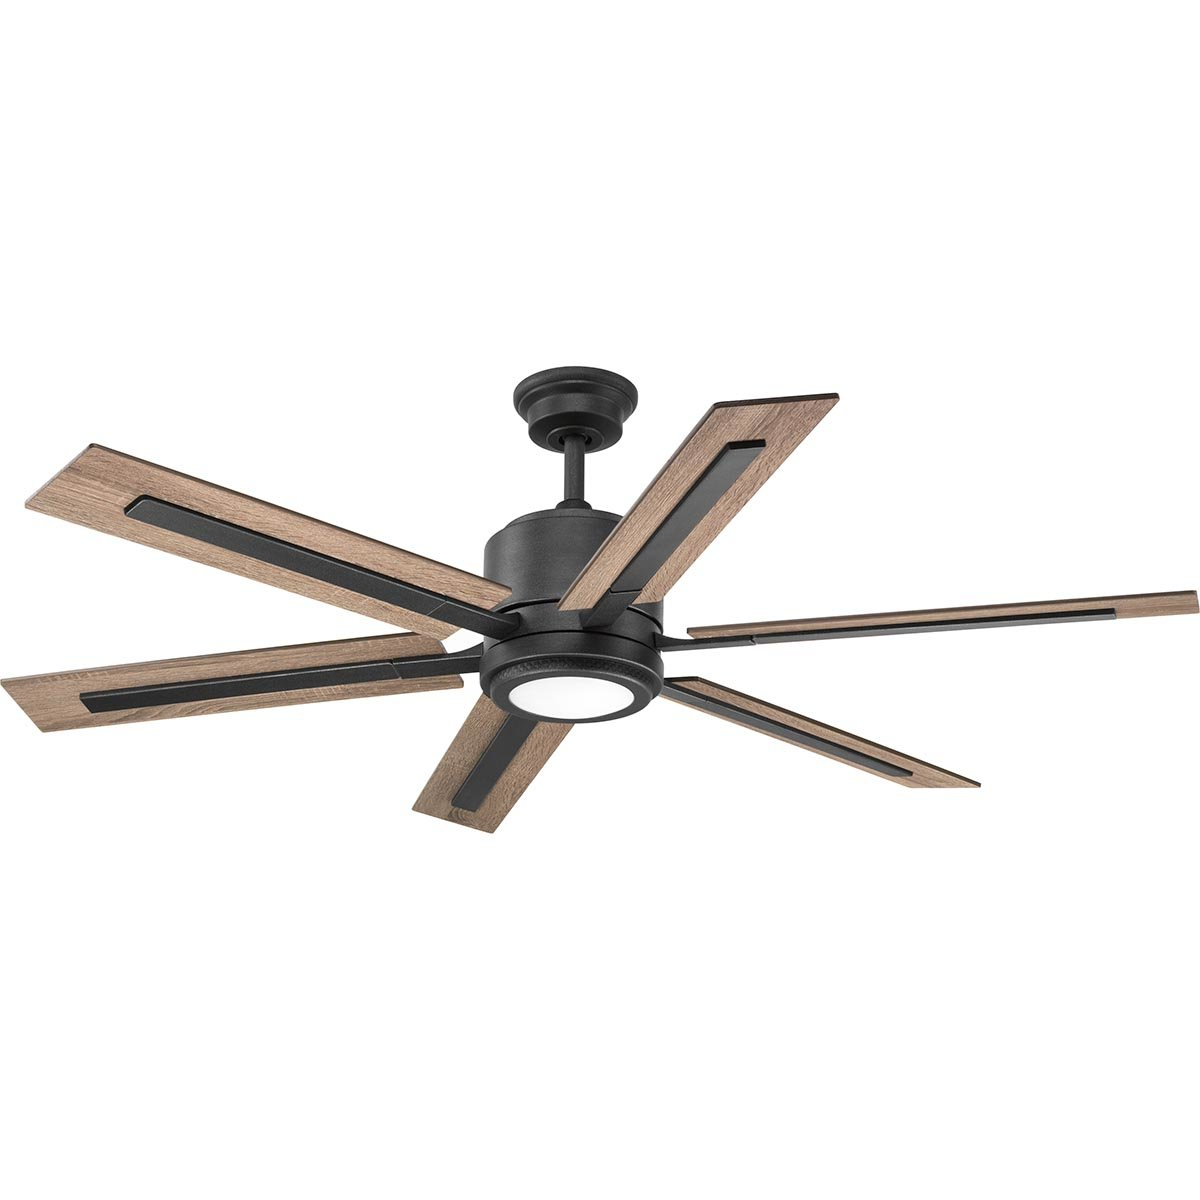 Ravello 5 Blade Led Ceiling Fans Throughout Most Popular Led Ceiling Fans – Home Depot Ceiling Fans (View 18 of 20)